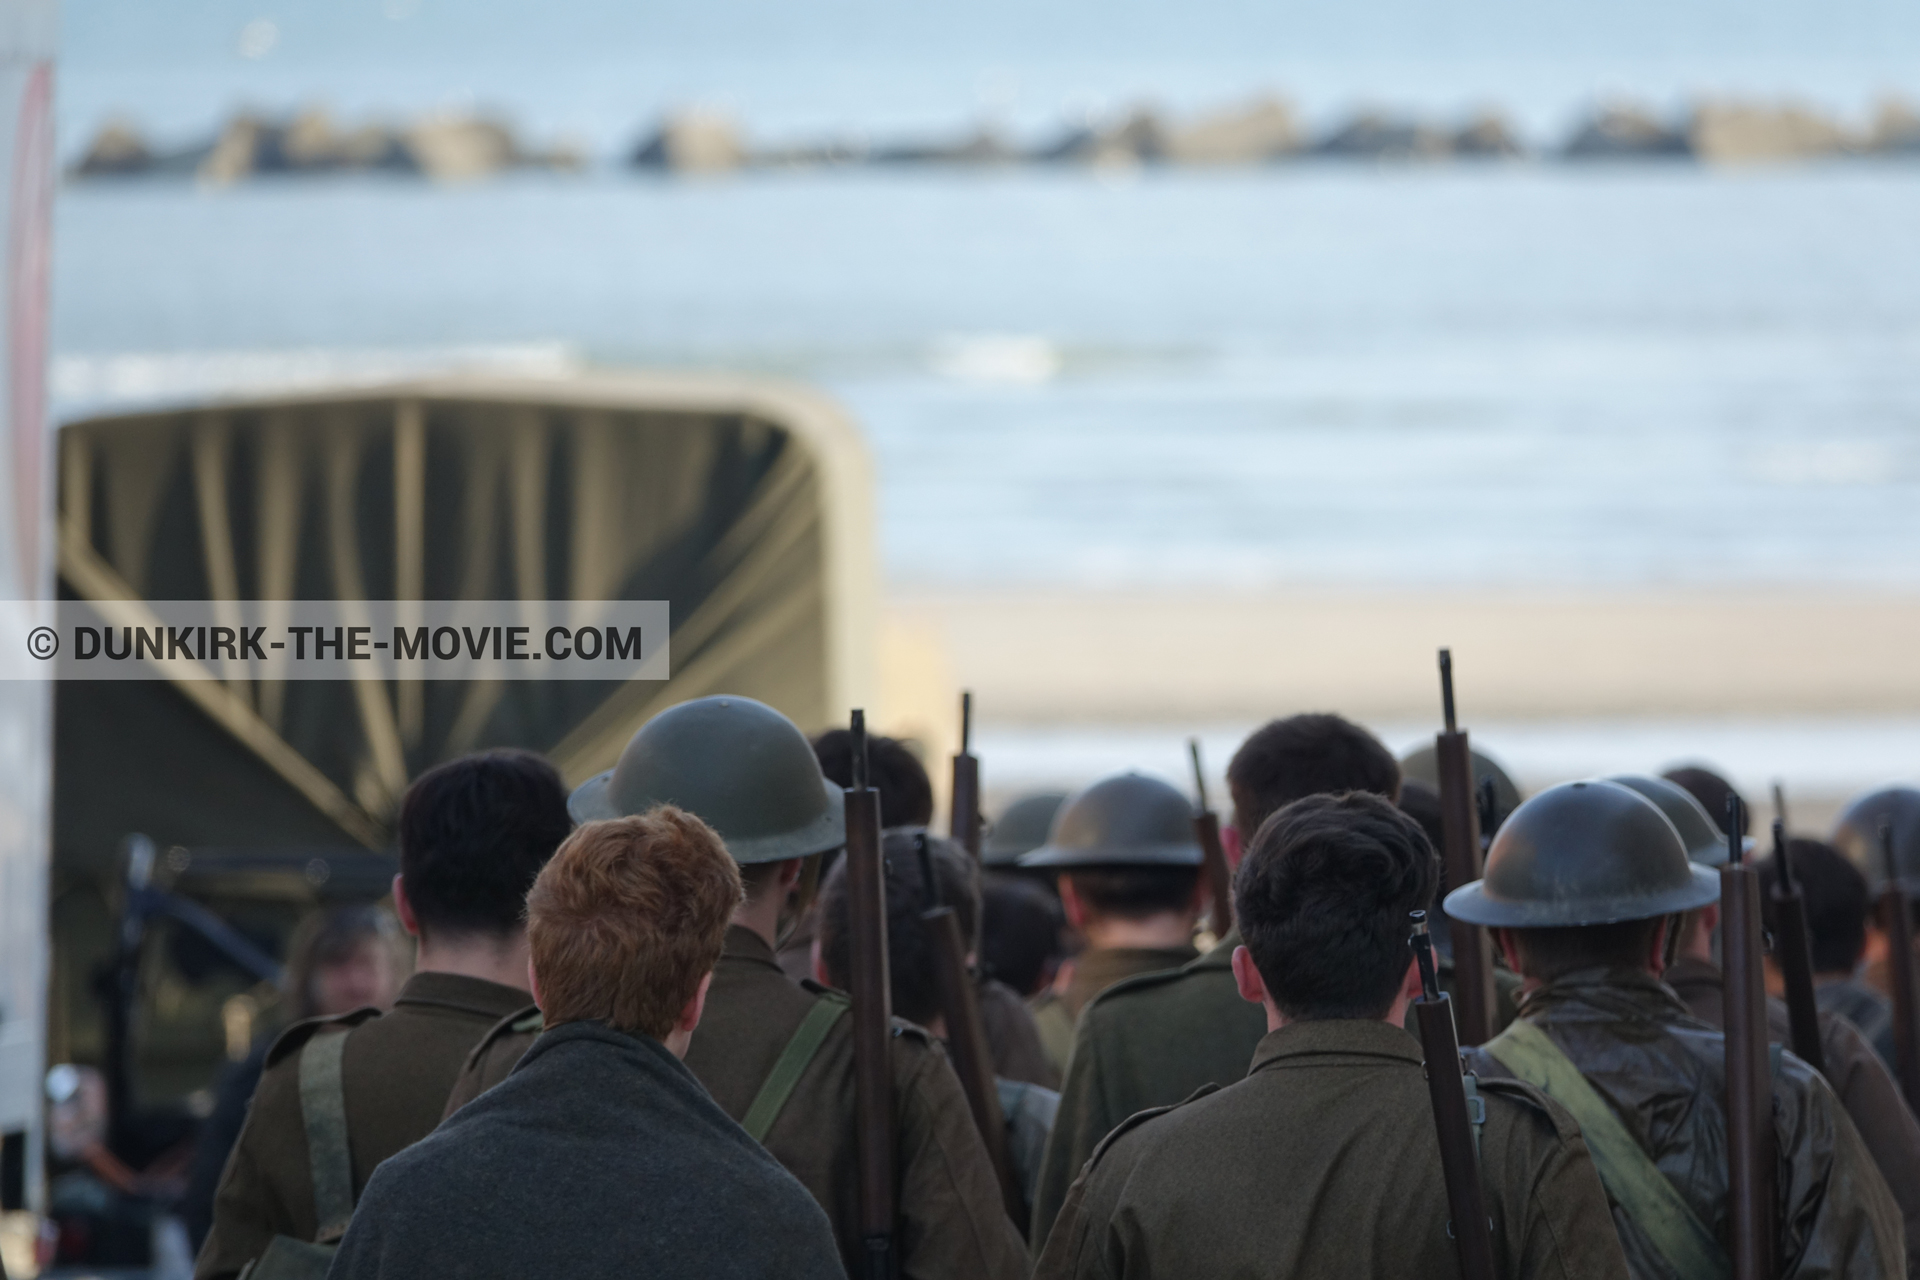 Picture with truck, supernumeraries, beach,  from behind the scene of the Dunkirk movie by Nolan